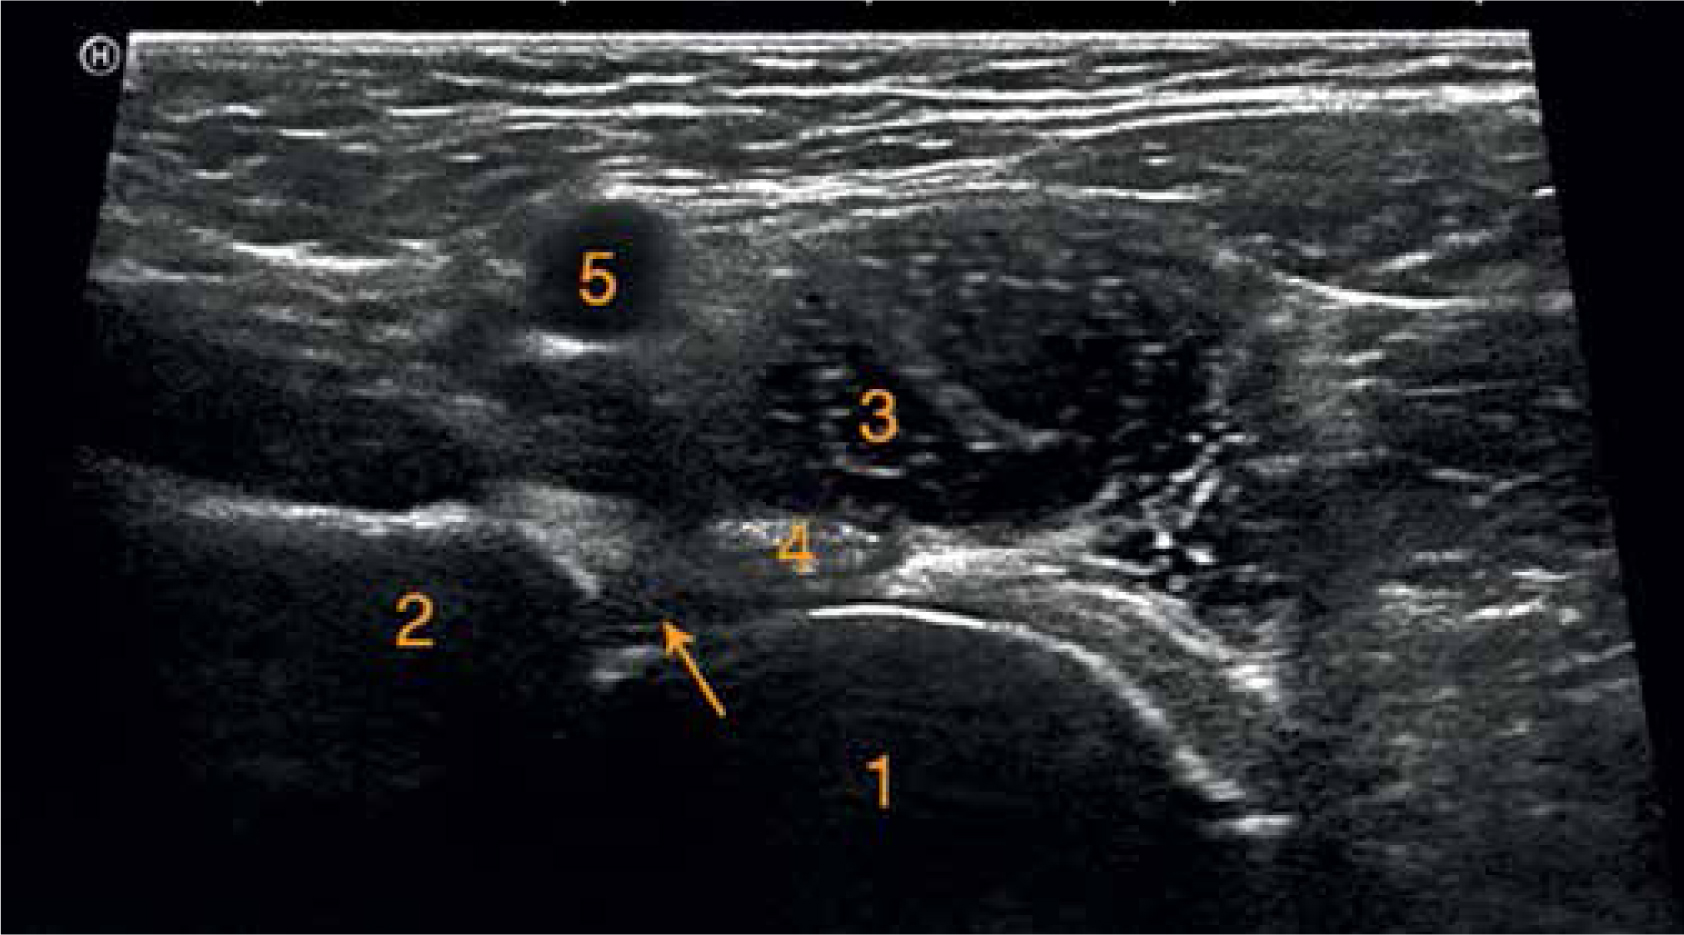 Internal snapping hip syndrome in dynamic ultrasonography